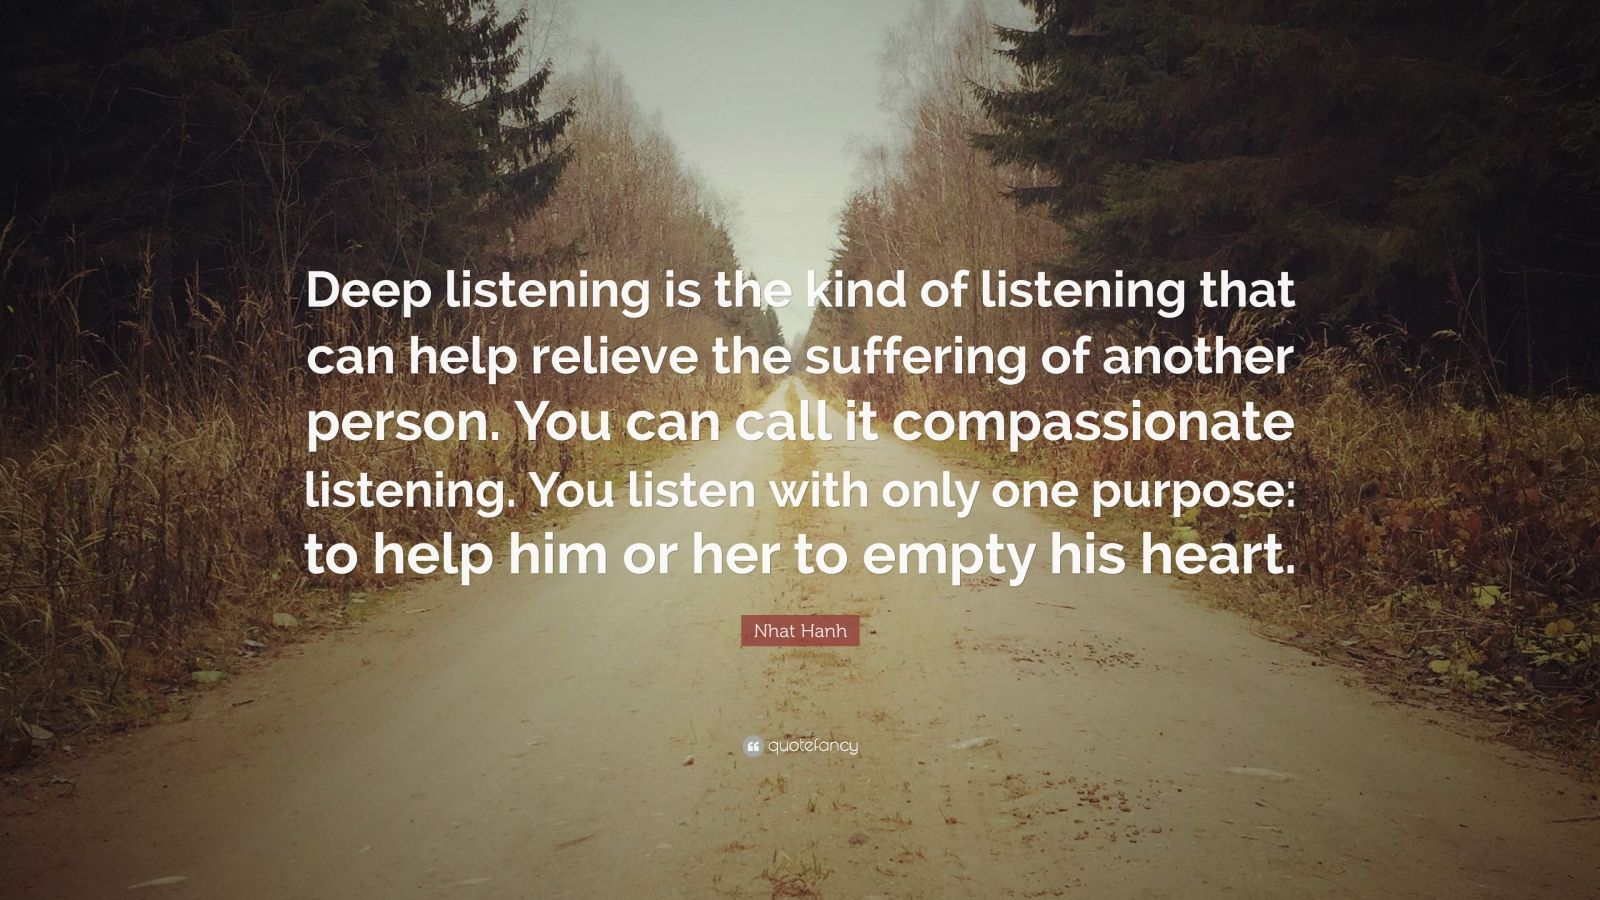 """Nhat Hanh Quote: """"Deep listening is the kind of listening that can help relieve the suffering of another person. You can call it compassionate listening. You listen with only one purpose: to help him or her to empty his heart."""""""